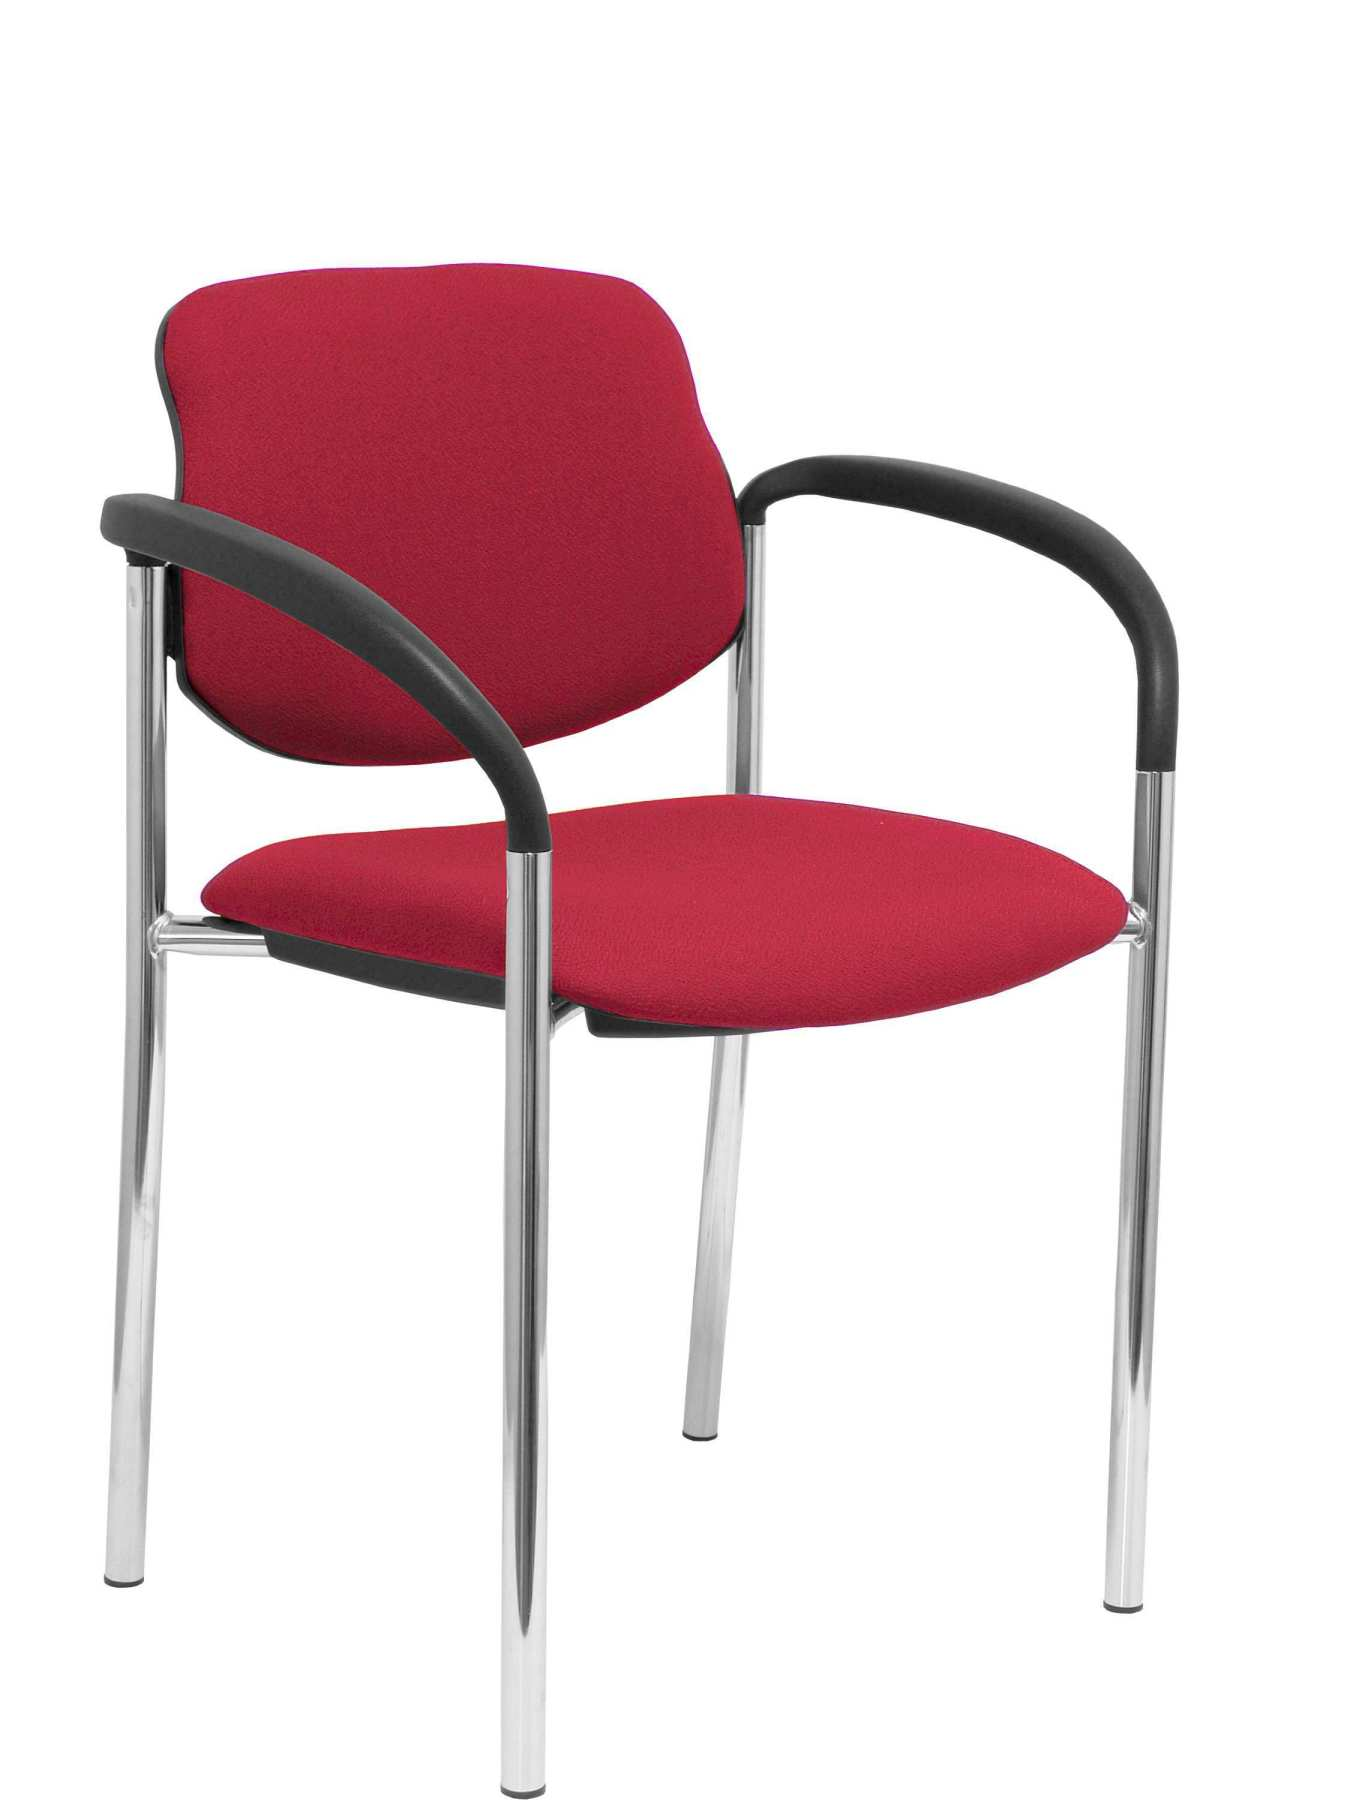 Confident Chair 4-leg And Estructrua Chrome Arms-Seat And Back Upholstered In Fabric BALI Maroon